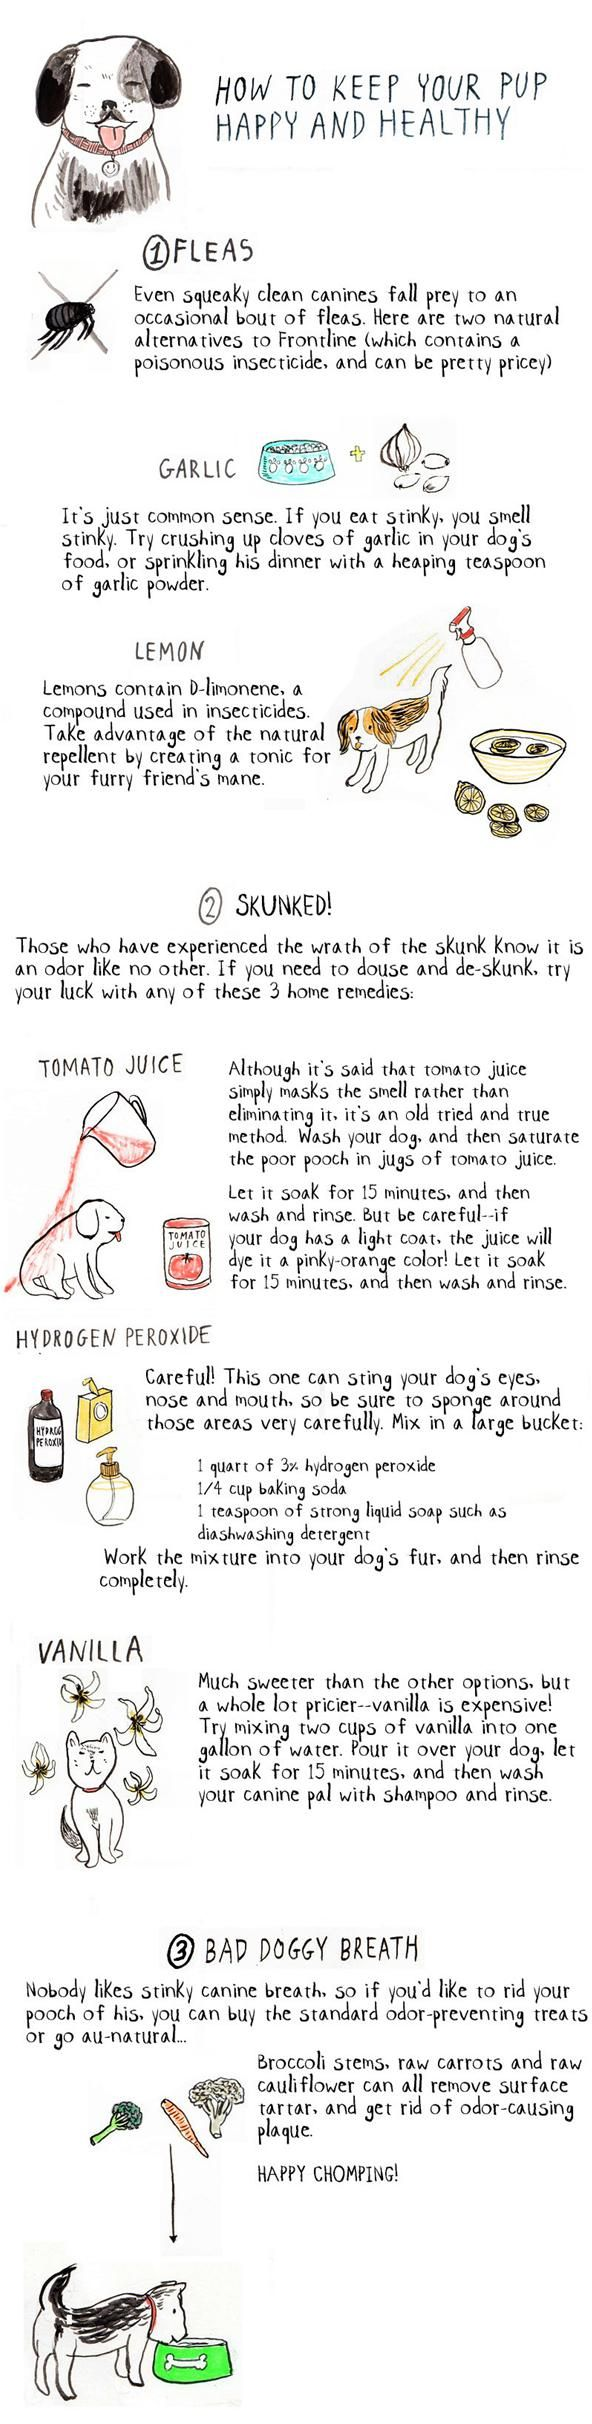 """They don't refer to them as """"man's best friend"""" for nothing. Your dog can be your best pal and least judgmental confidante, so make sure you take good care of him or her! When the occasion arises (which is hopefully never), follow the three home remedies below for treatment of fleas, bad breath, and skunk smell—you may even save a few pennies in the process. Don't Miss: 3 Easy Homemade Dog Treats Recipes for Your Pooch Don't Miss: 12 People Foods Dogs Should Eat for ..."""